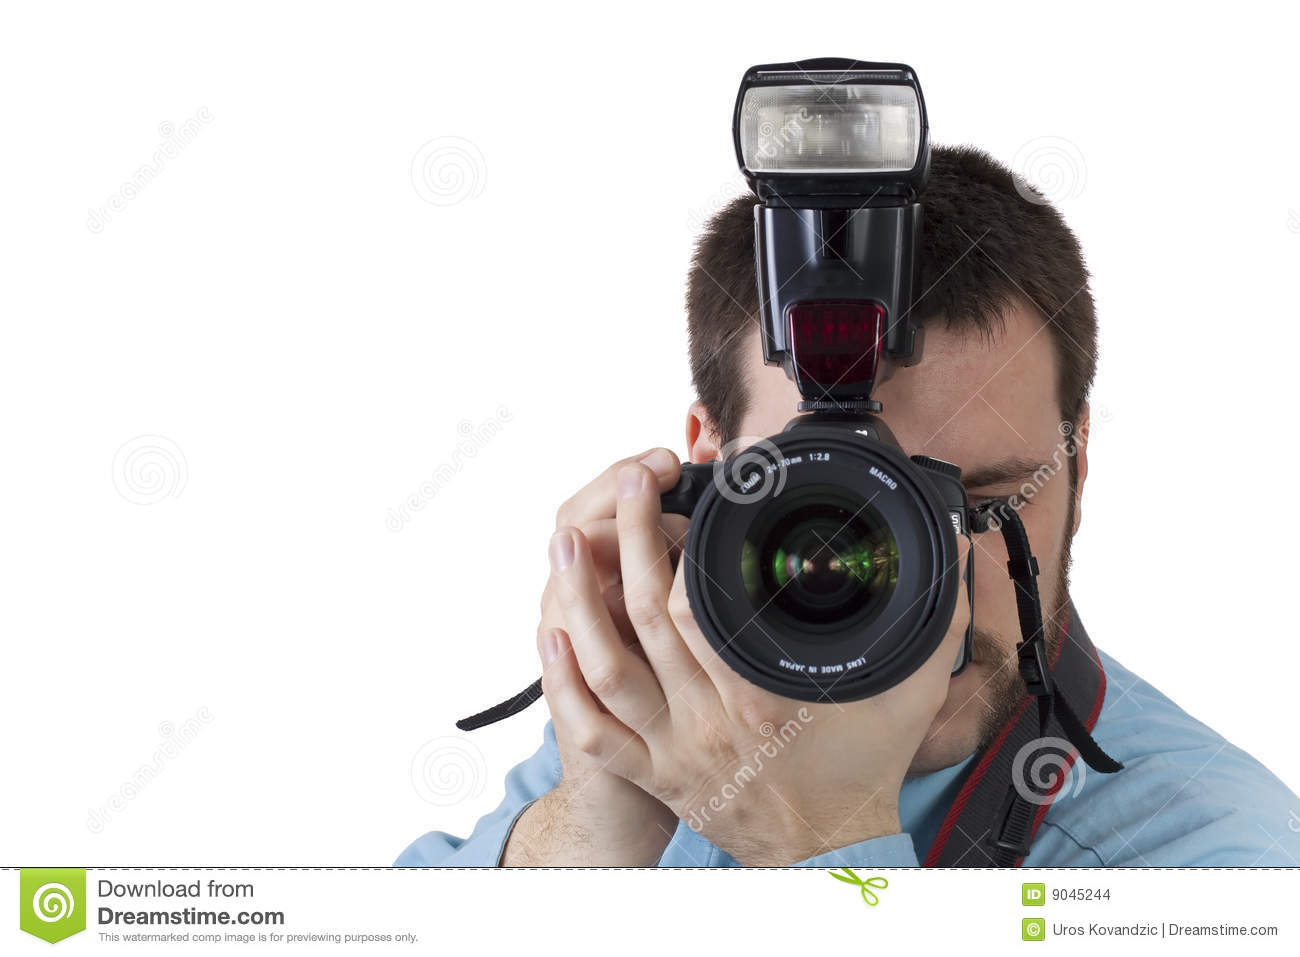 Shooting Digital Photographs Through >> Young Man Shooting With Digital Camera Stock Photo Image Of Blue